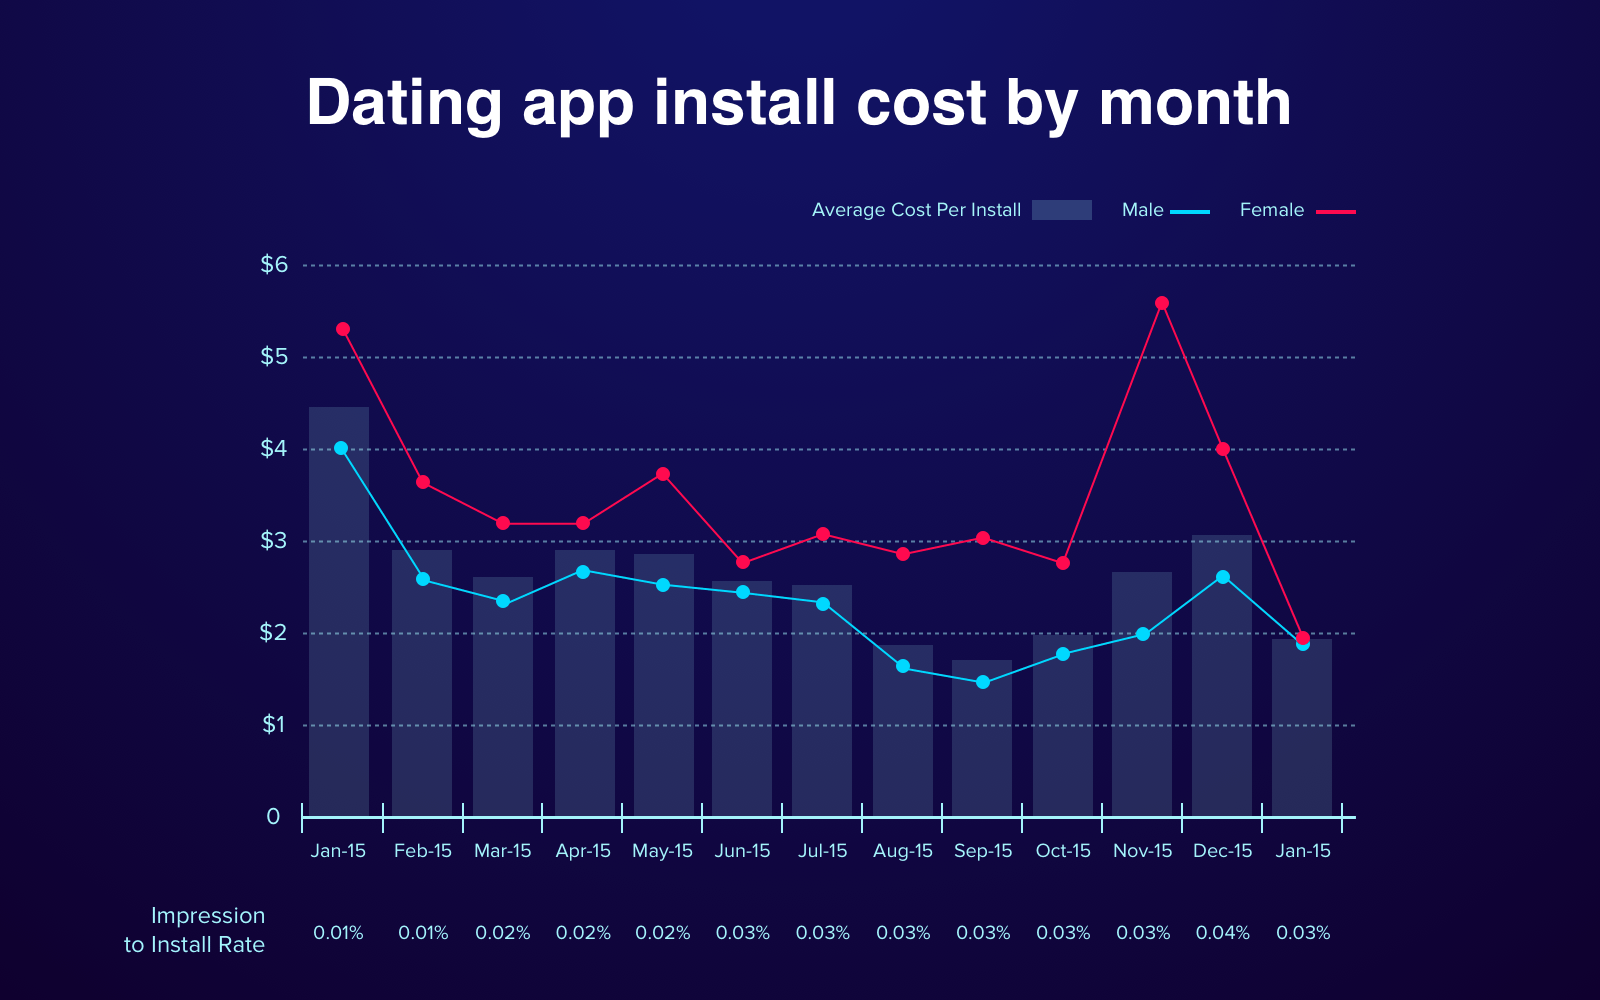 Marketing budget for an app: example based on dating app's cost per install